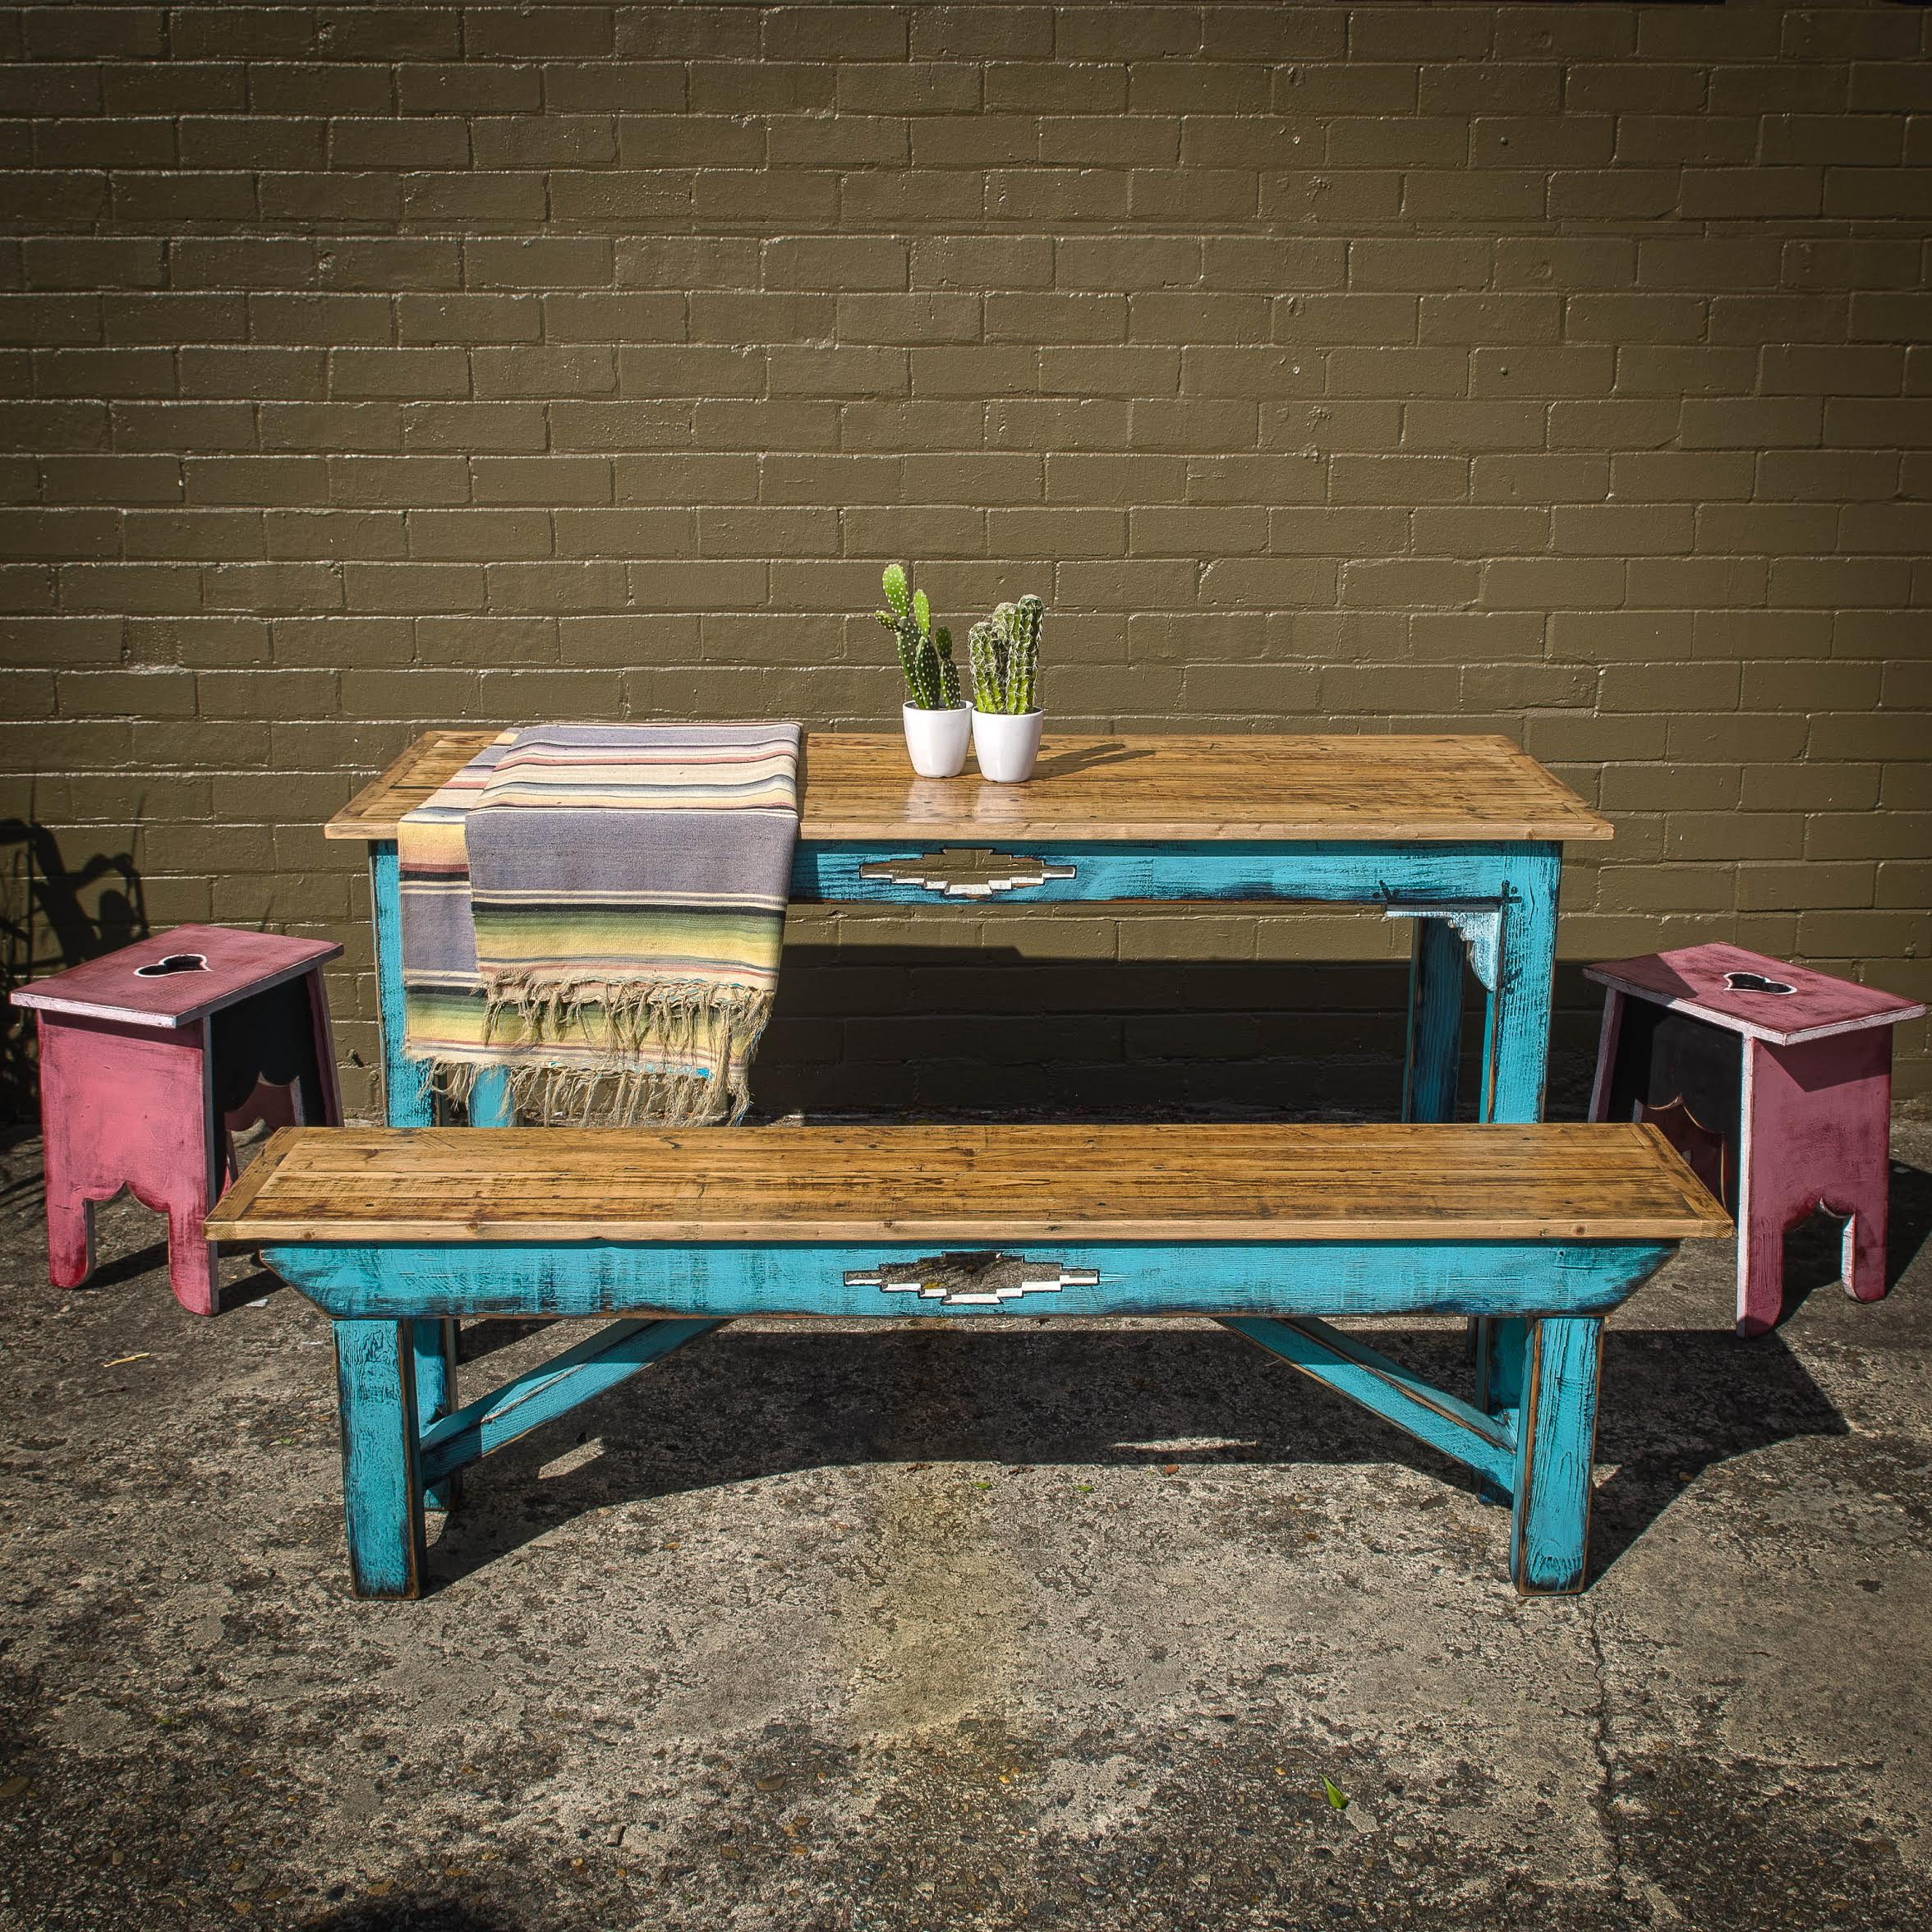 Santa Fe Style Table and Benches